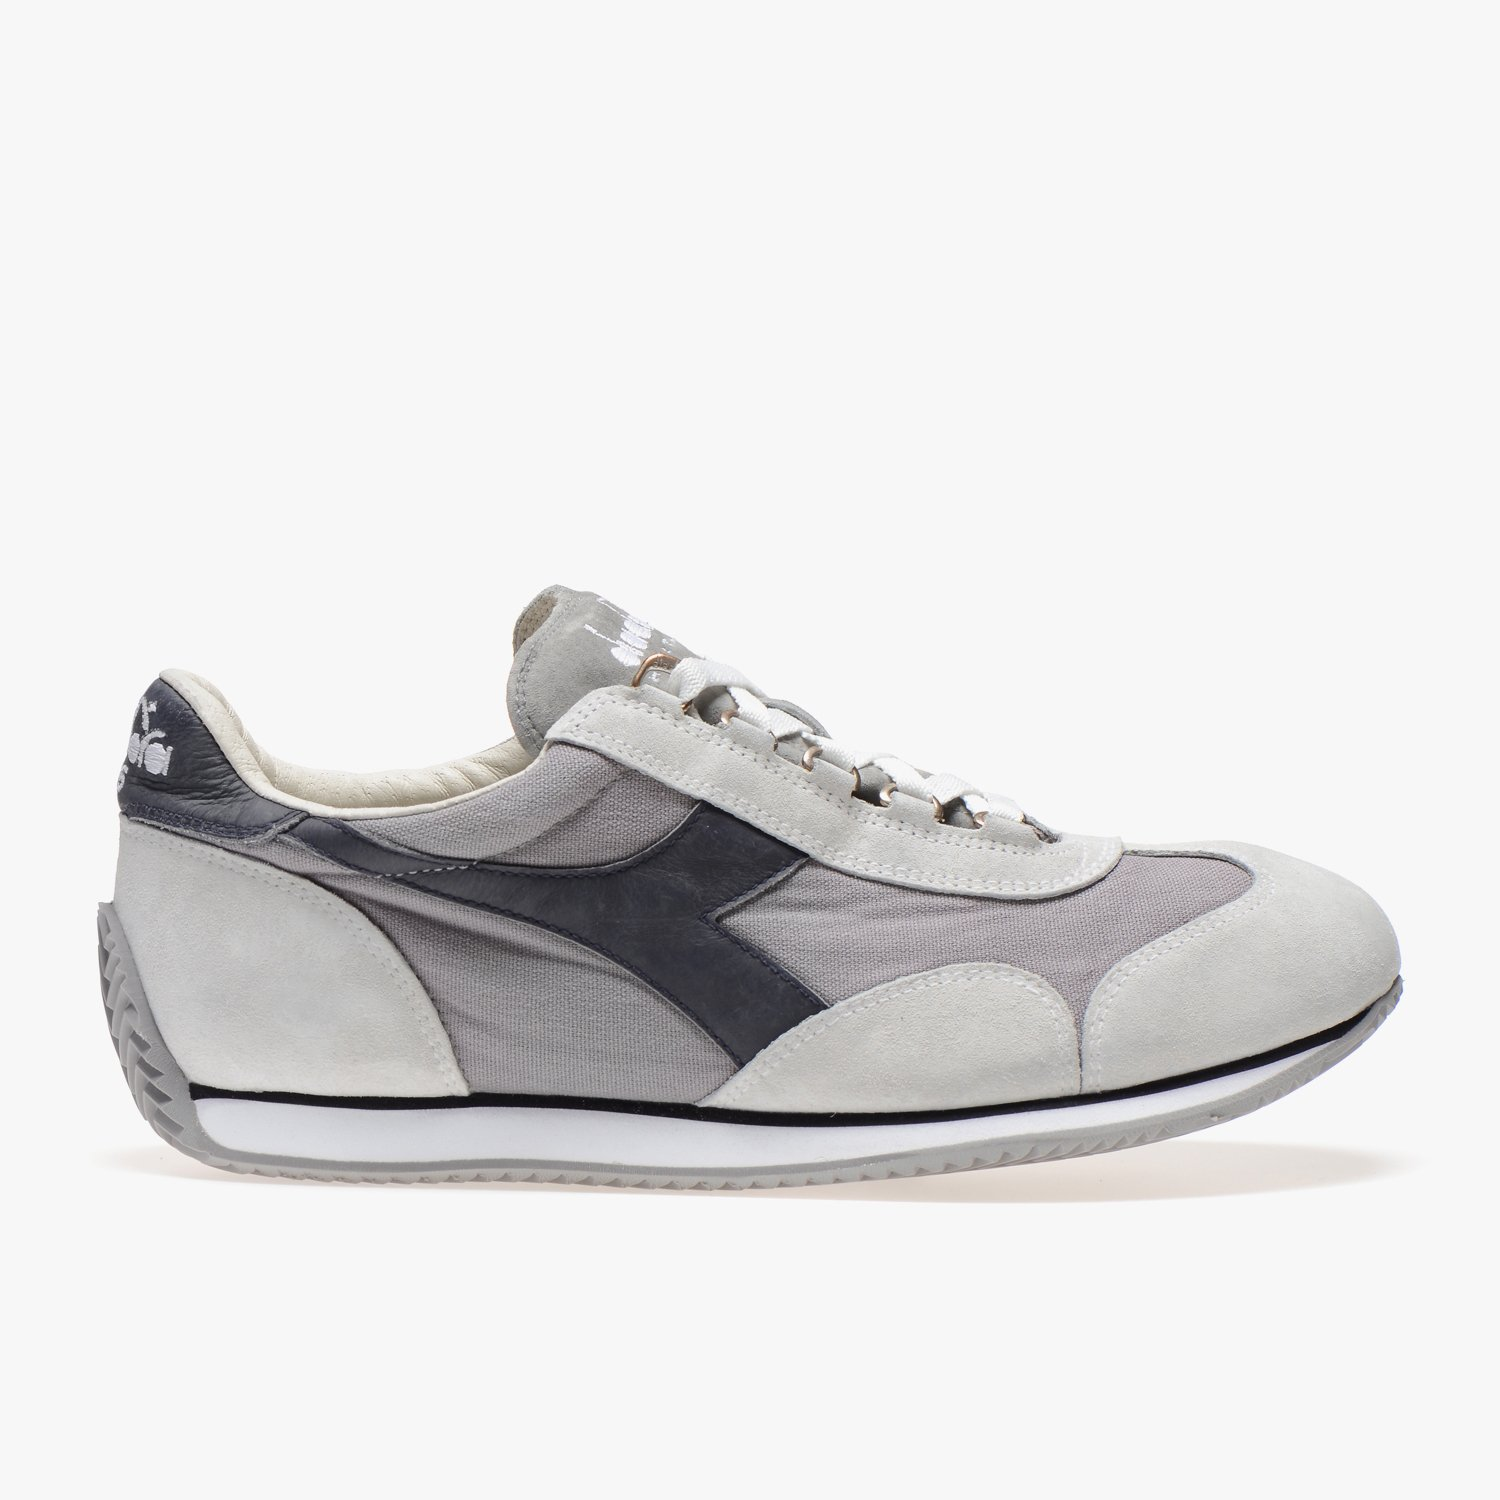 nuovo design comprare popolare stile classico Diadora Heritage EQUIPE STONE WASH 12 - Diadora Online Shop INT